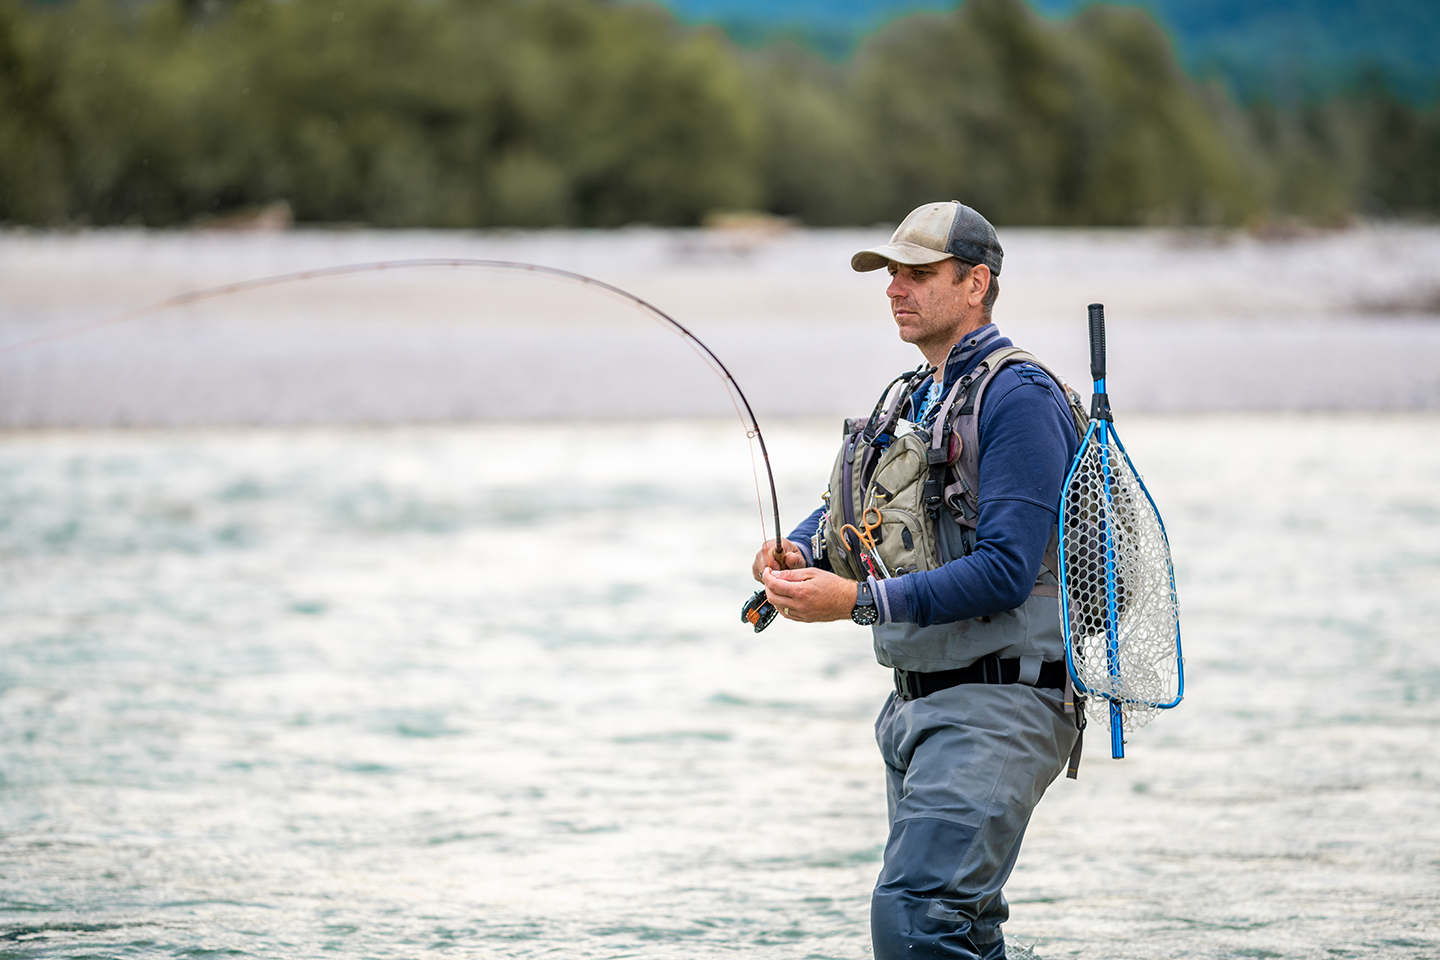 A veteran fly fishing in a river as part of a fishing therapy retreat